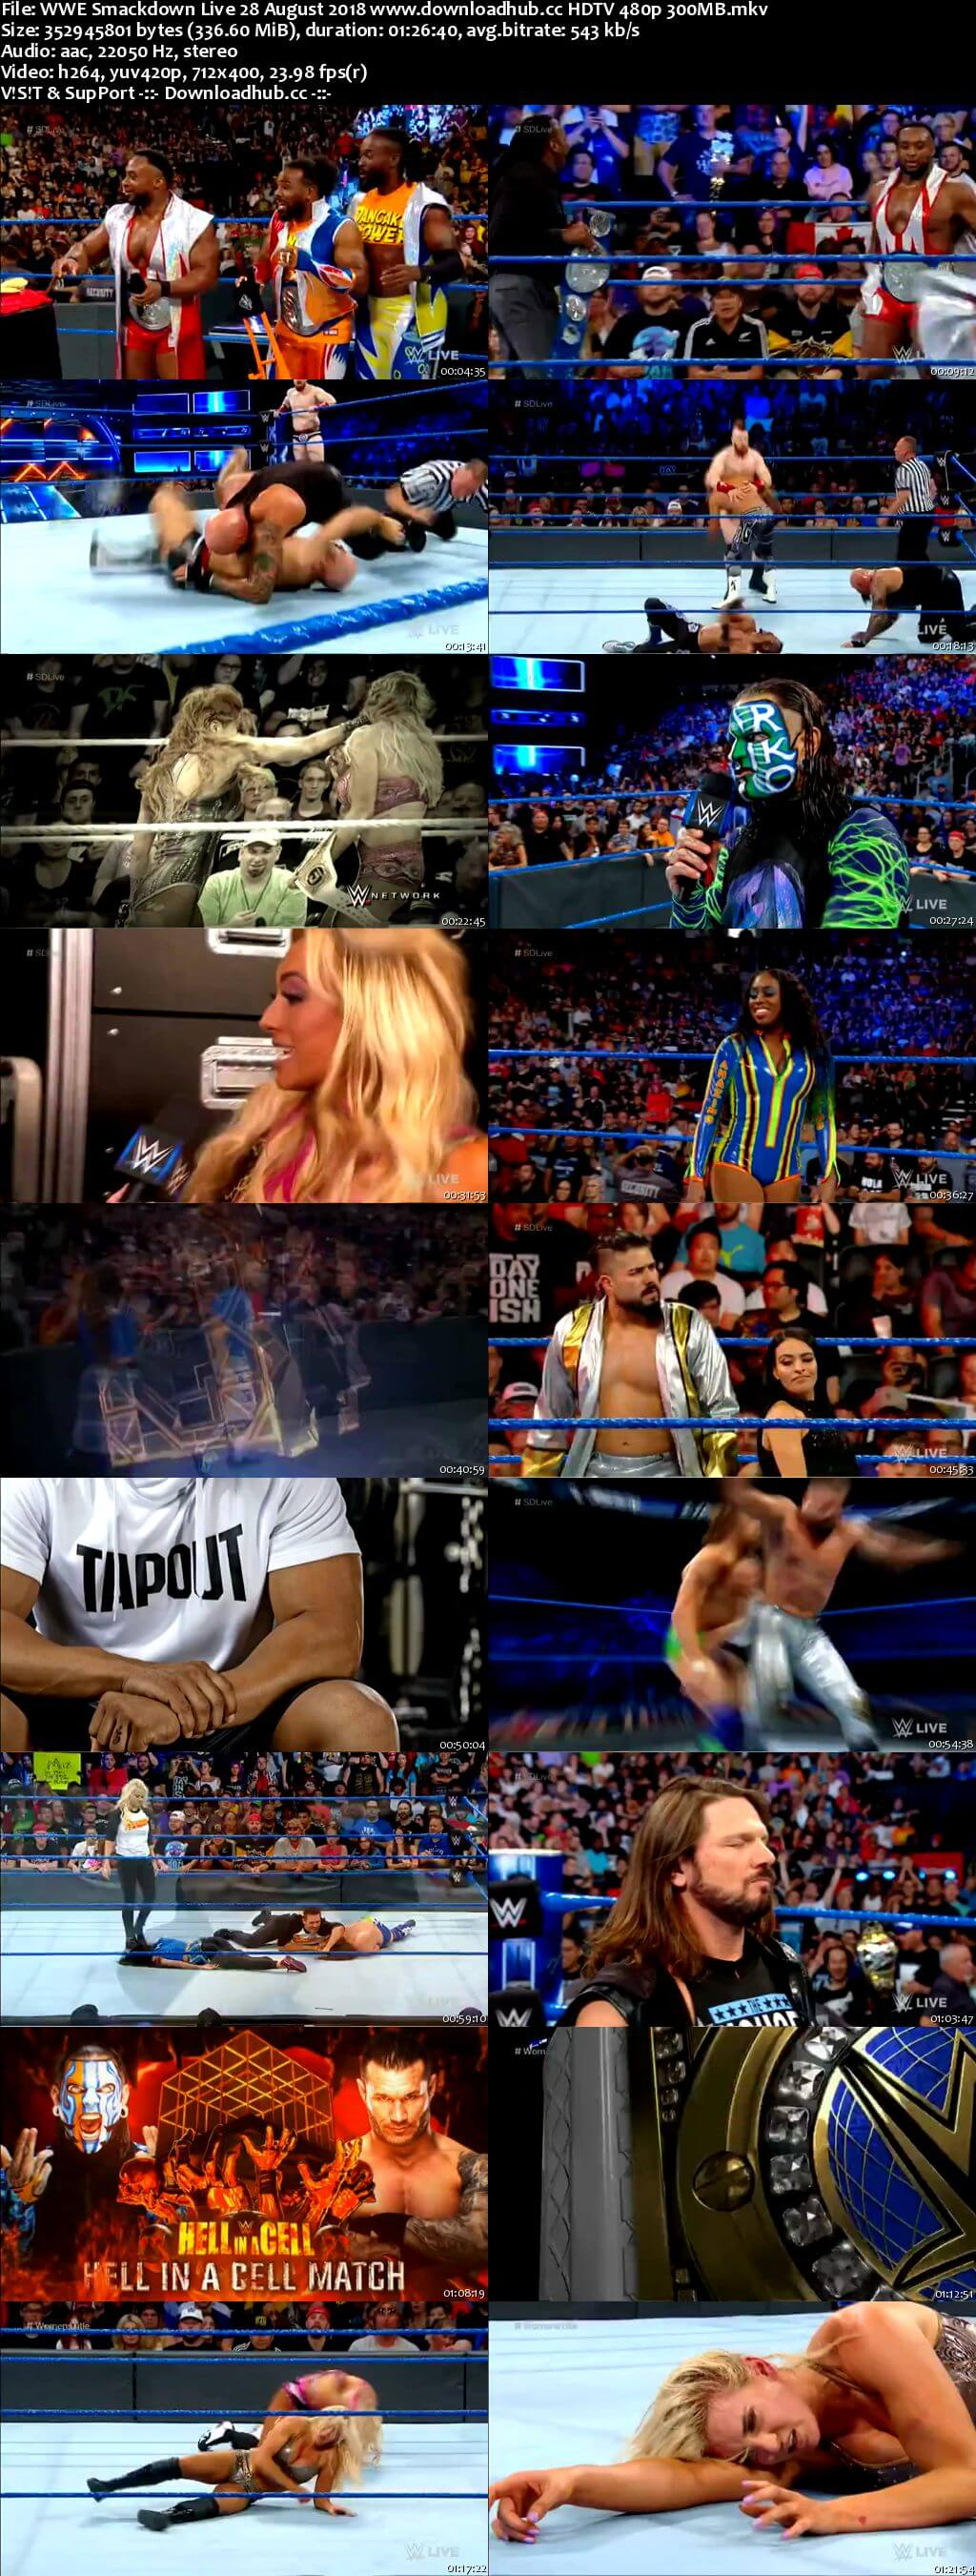 WWE Smackdown Live 28 August 2018 480p HDTV Download